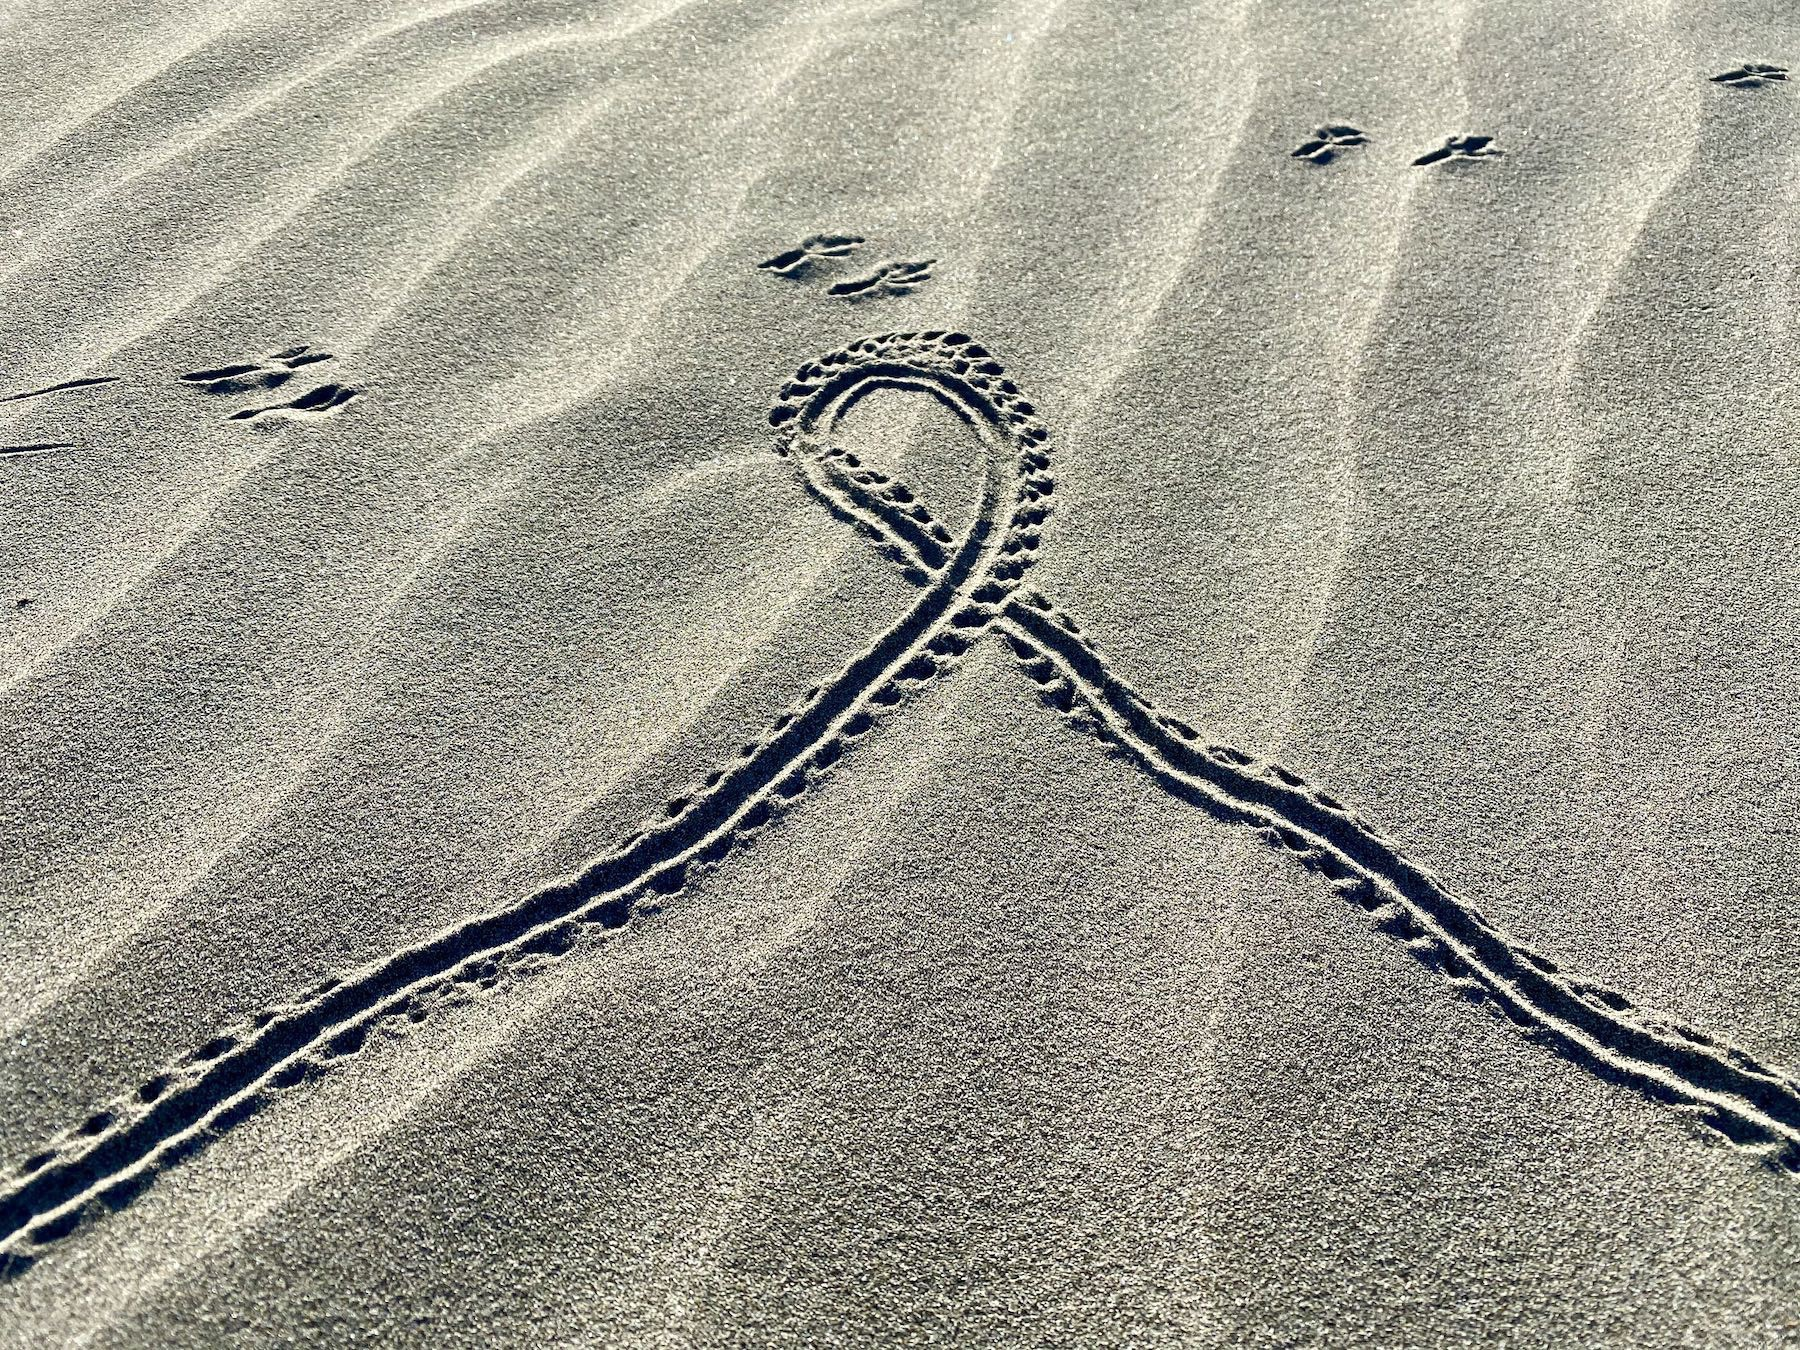 Tracks of a crab and a bird. Lines from wind blowing sand.